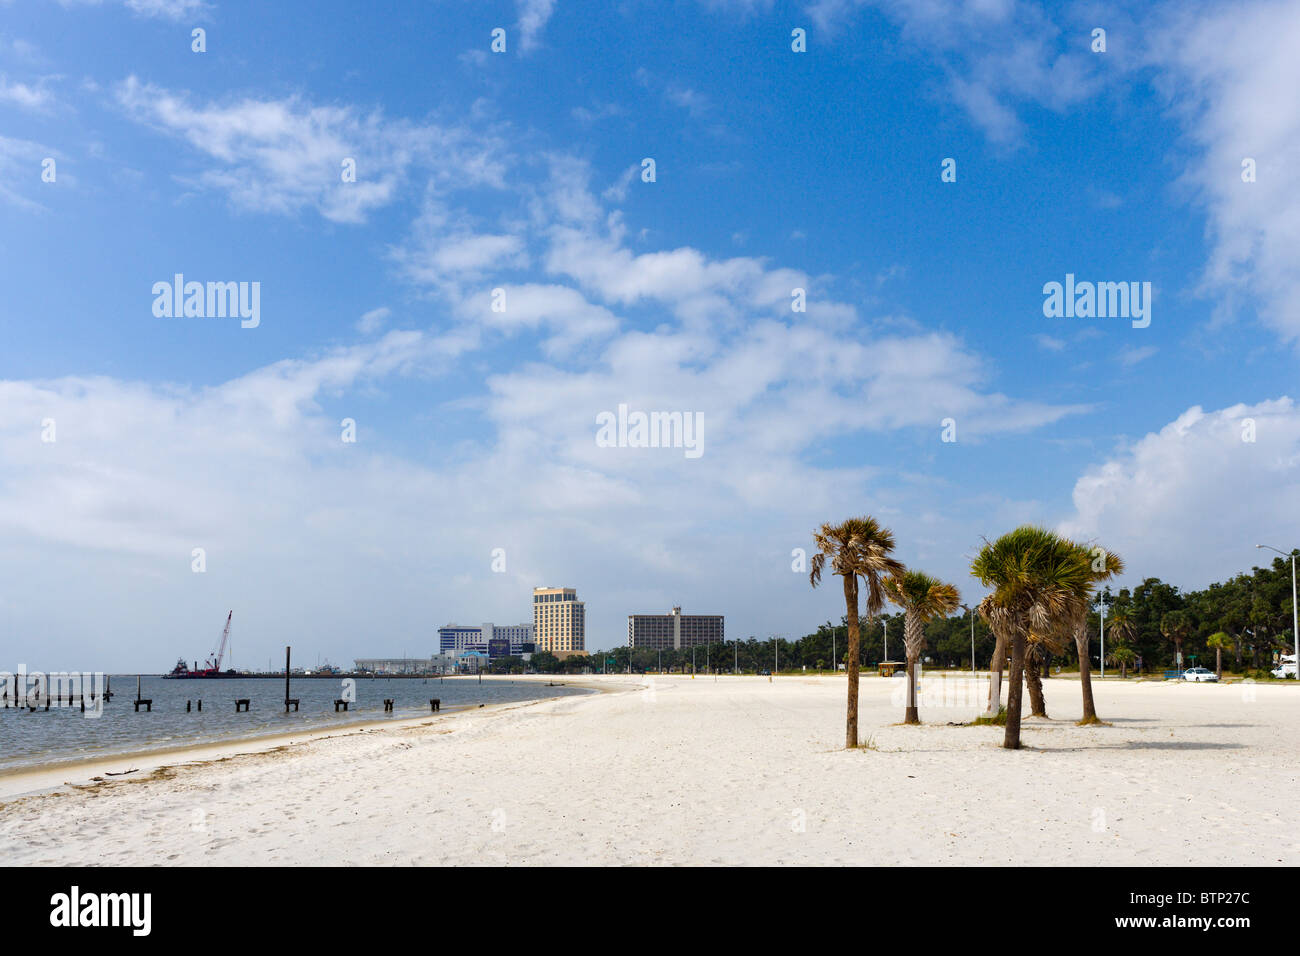 Biloxi Mississippi Beach High Resolution Stock Photography And